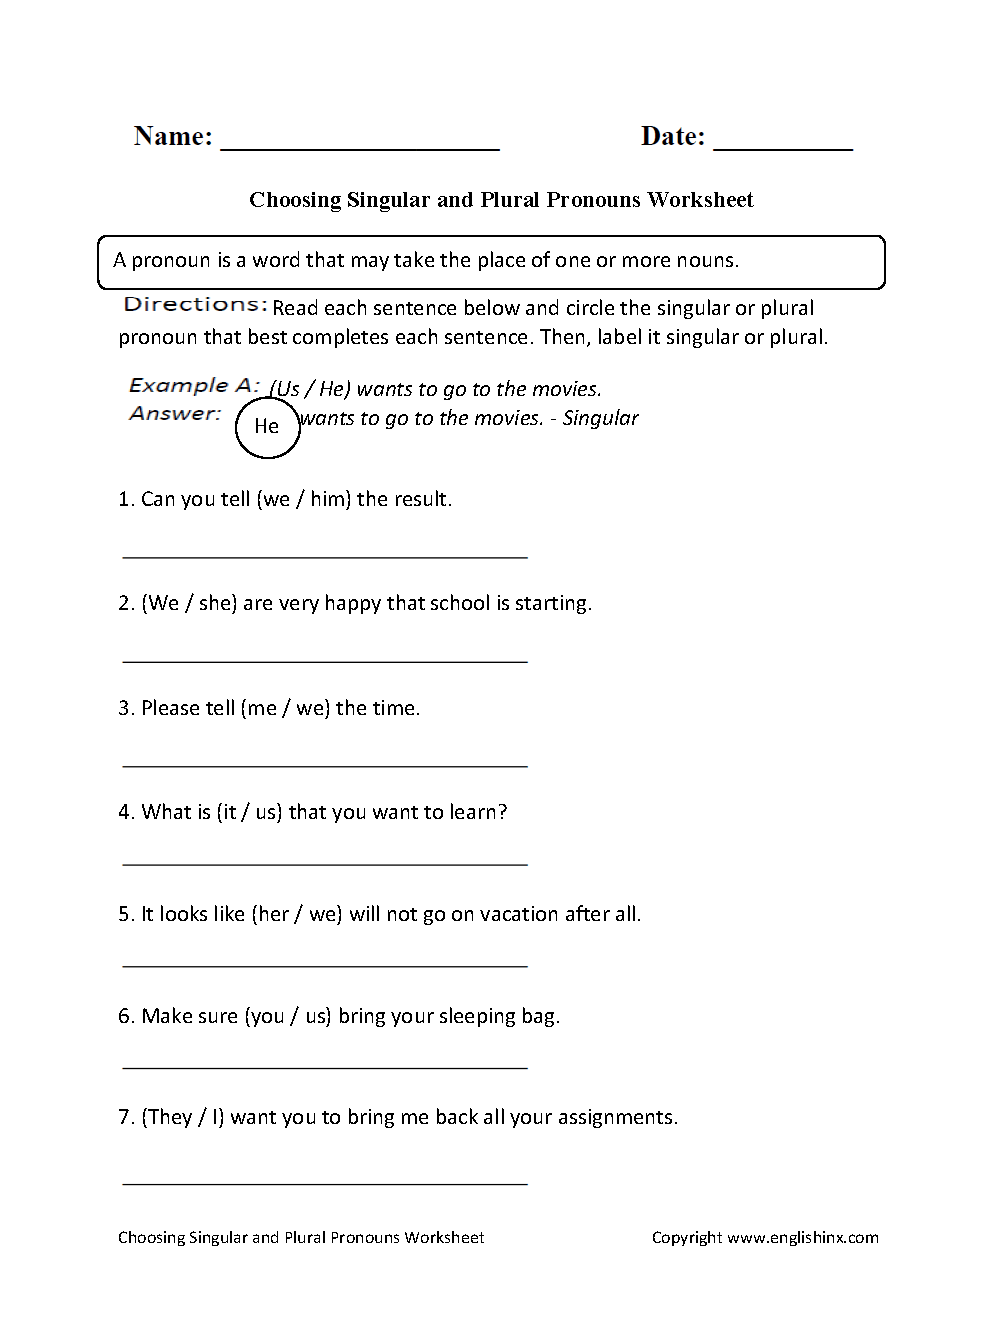 Worksheets Nouns And Pronouns Worksheet pronouns worksheets singular and plural or worksheet